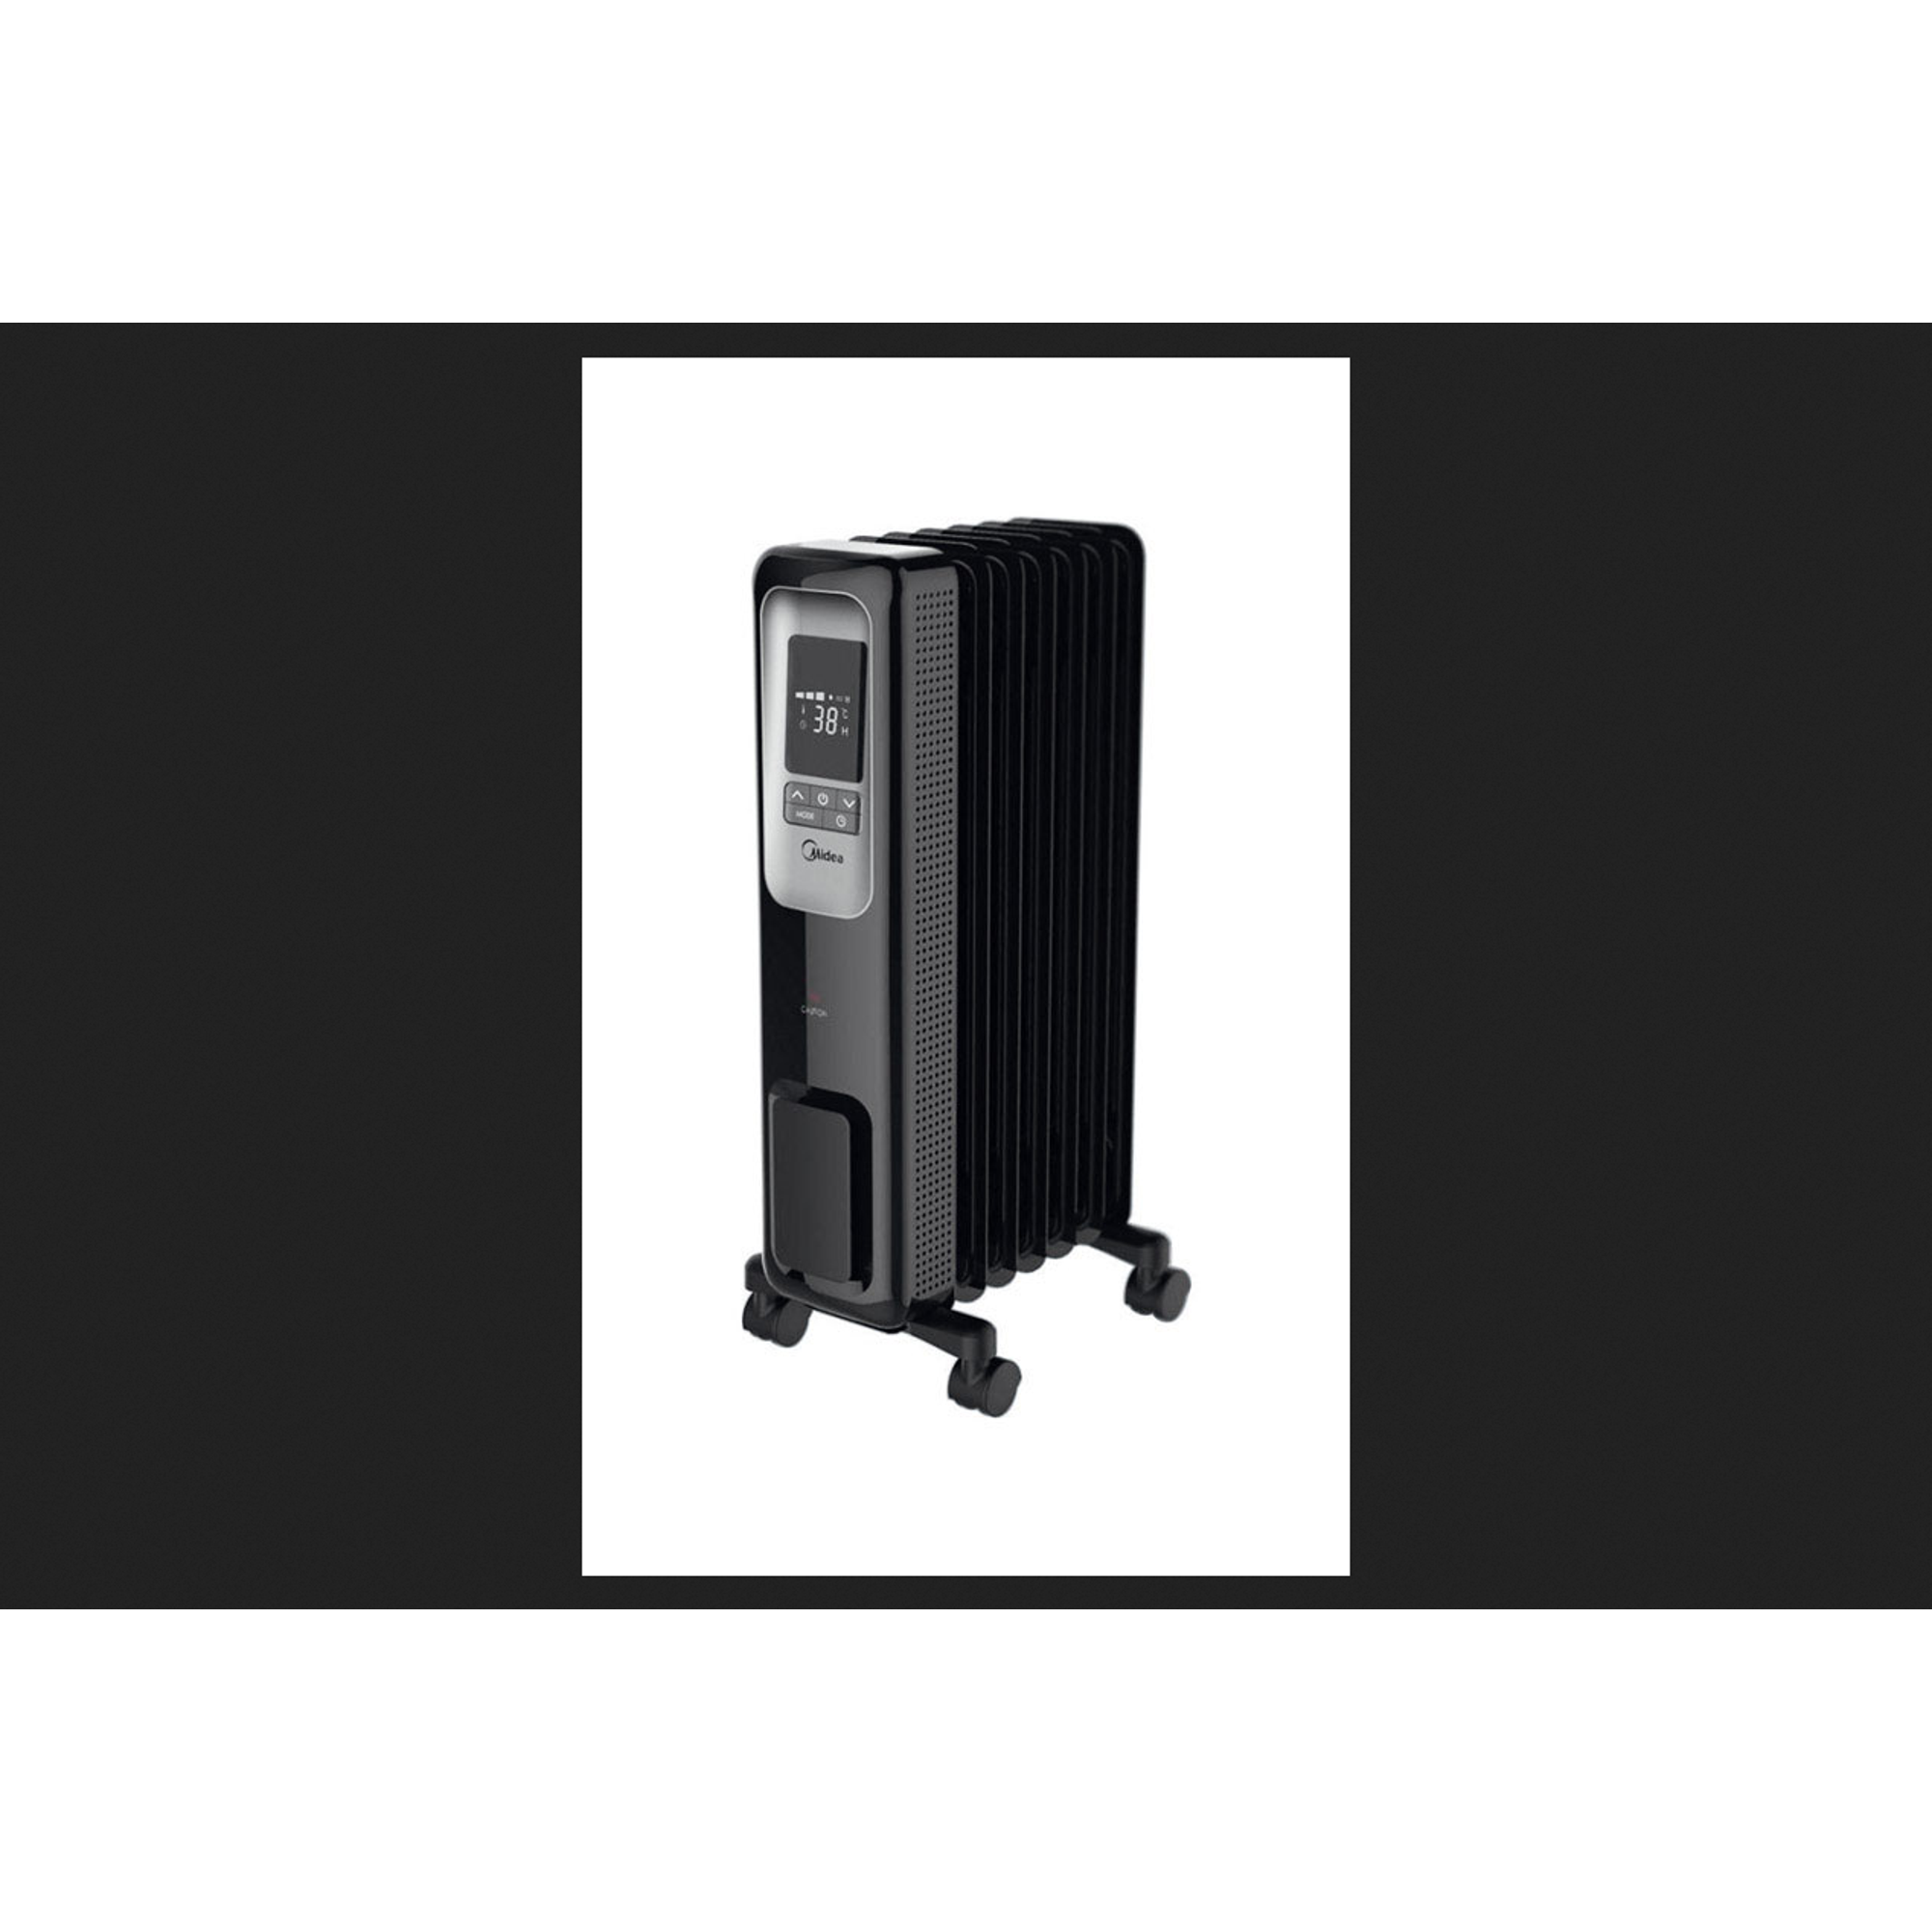 Pelonis Electric Oil Filled Radiant Thermostat Heater With Remote Control Black Walmart Com Walmart Com